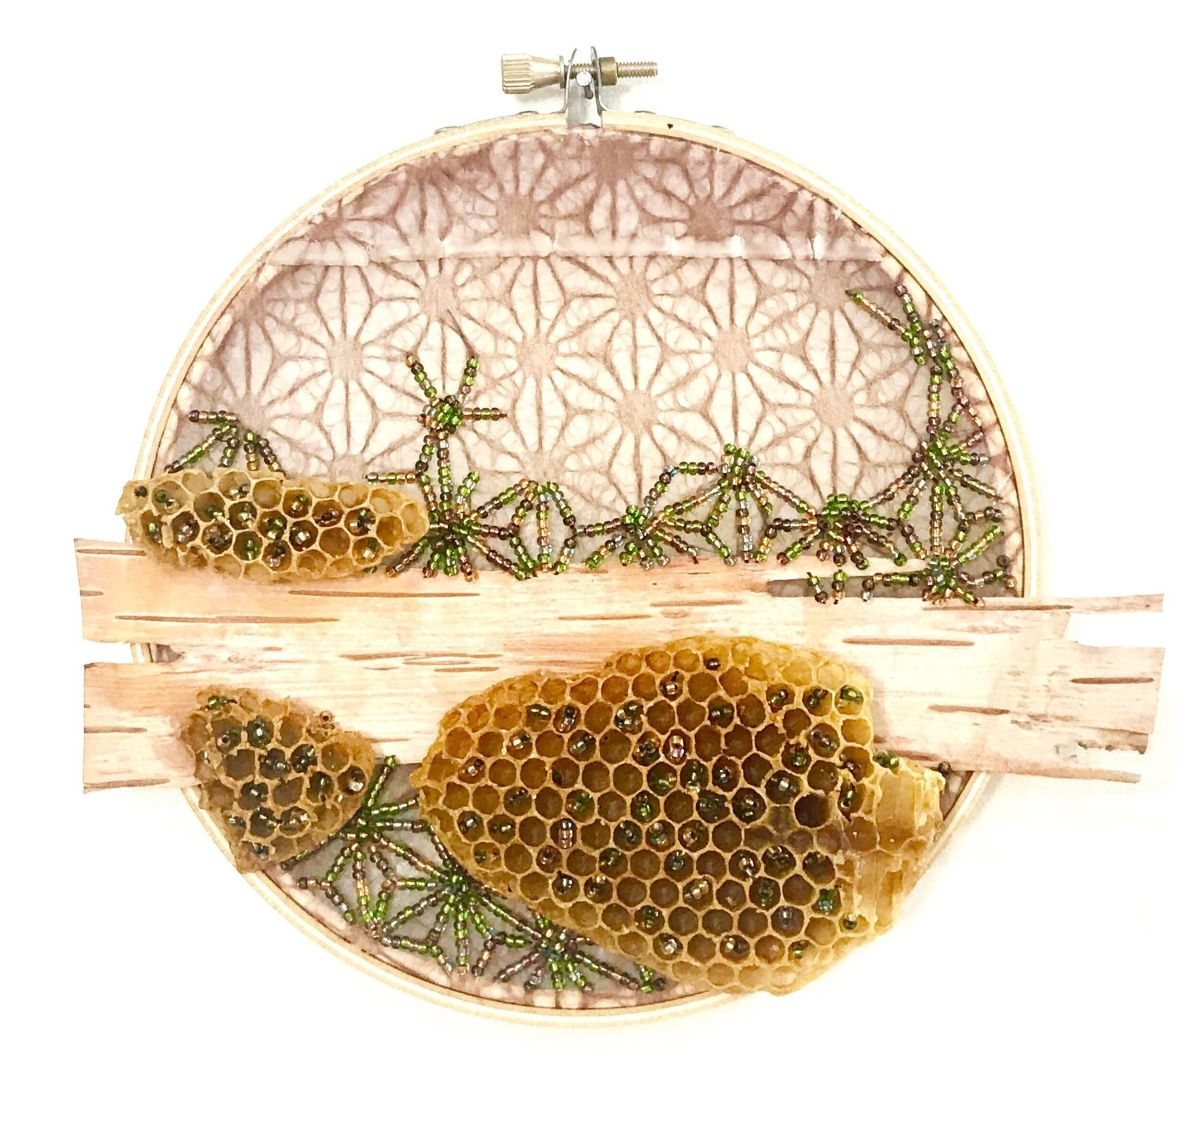 3 embroidery art beehive by ava roth